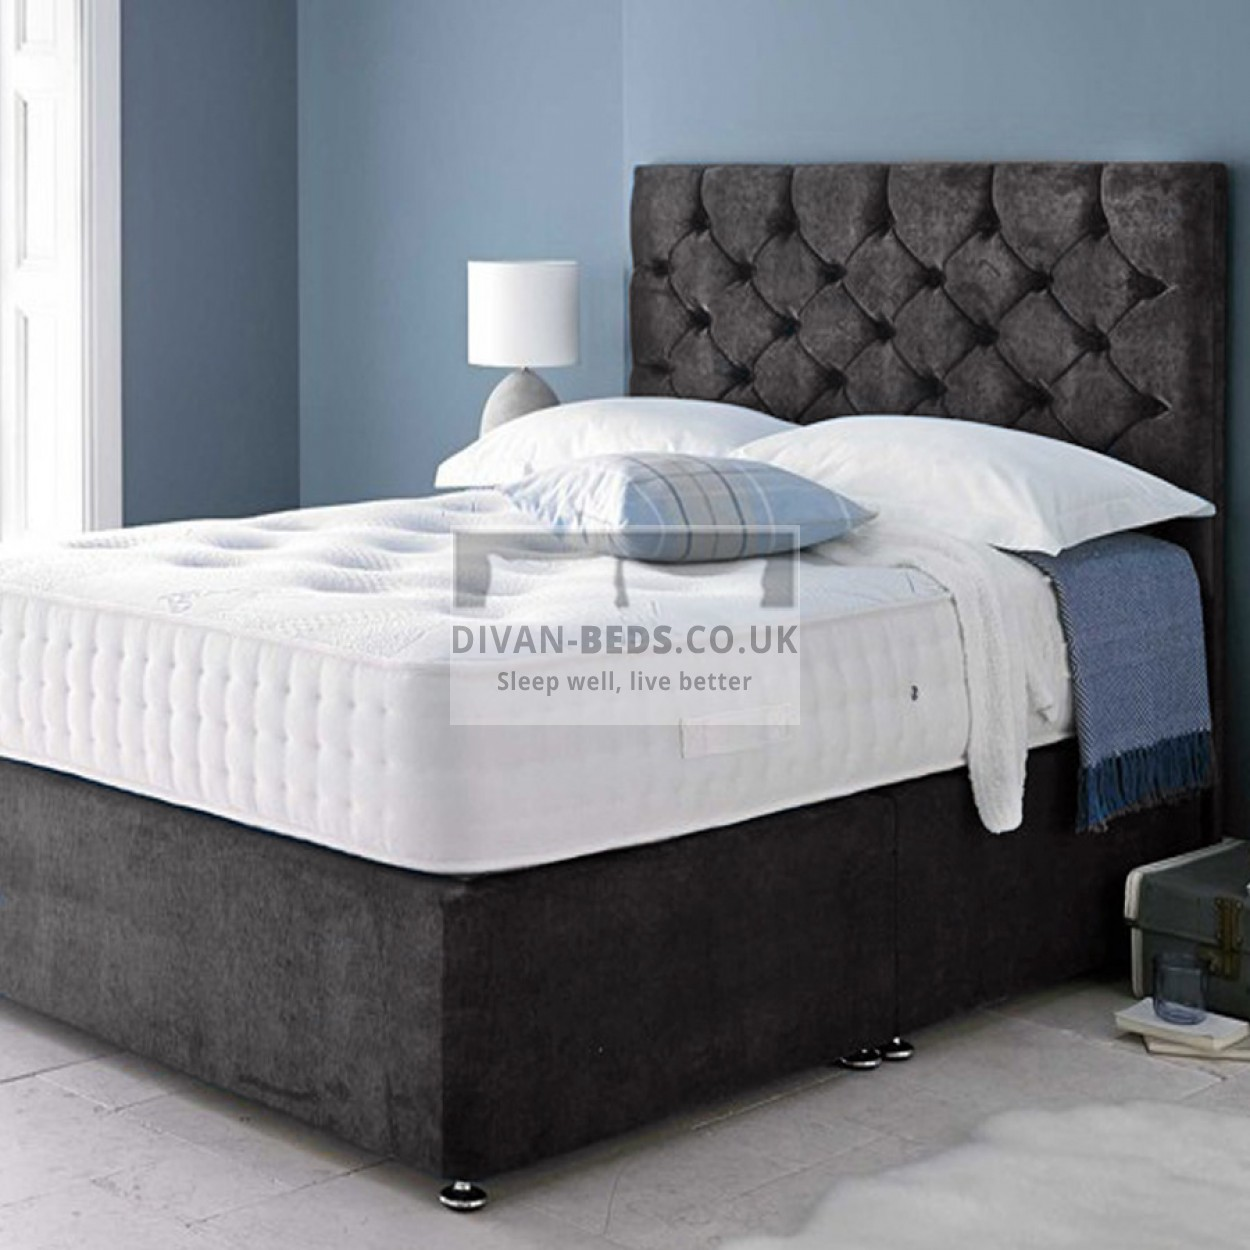 Hermes soft velour divan bed with 1500 pocket spring for Divan bed with memory foam mattress